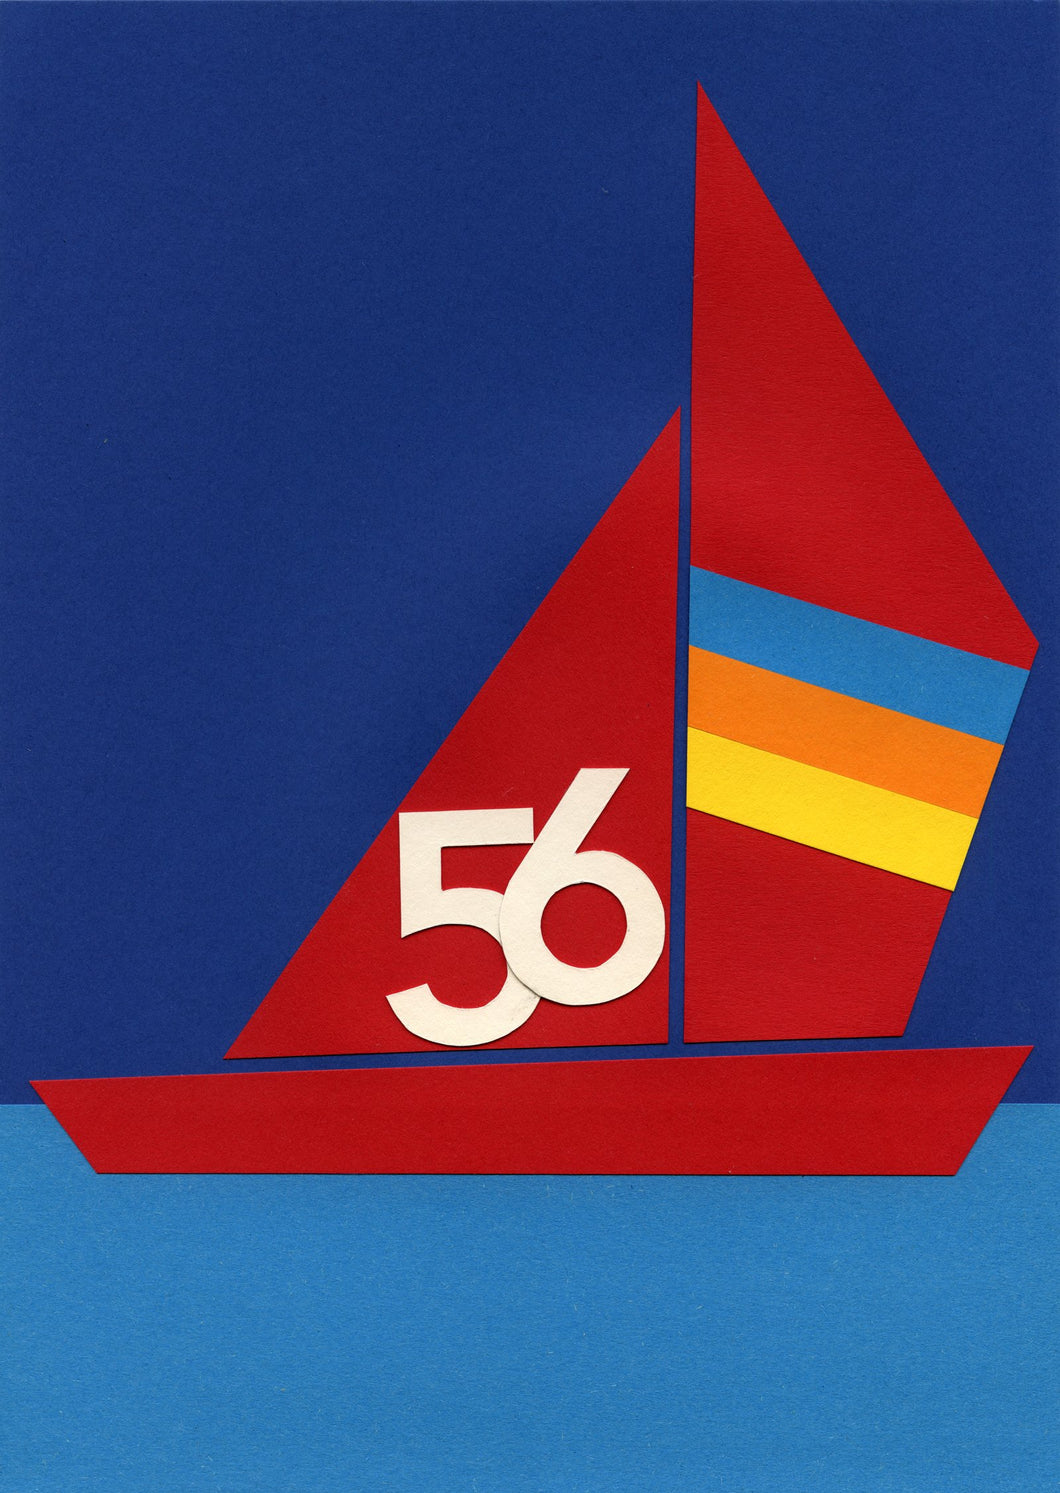 Sailing Regatta 56